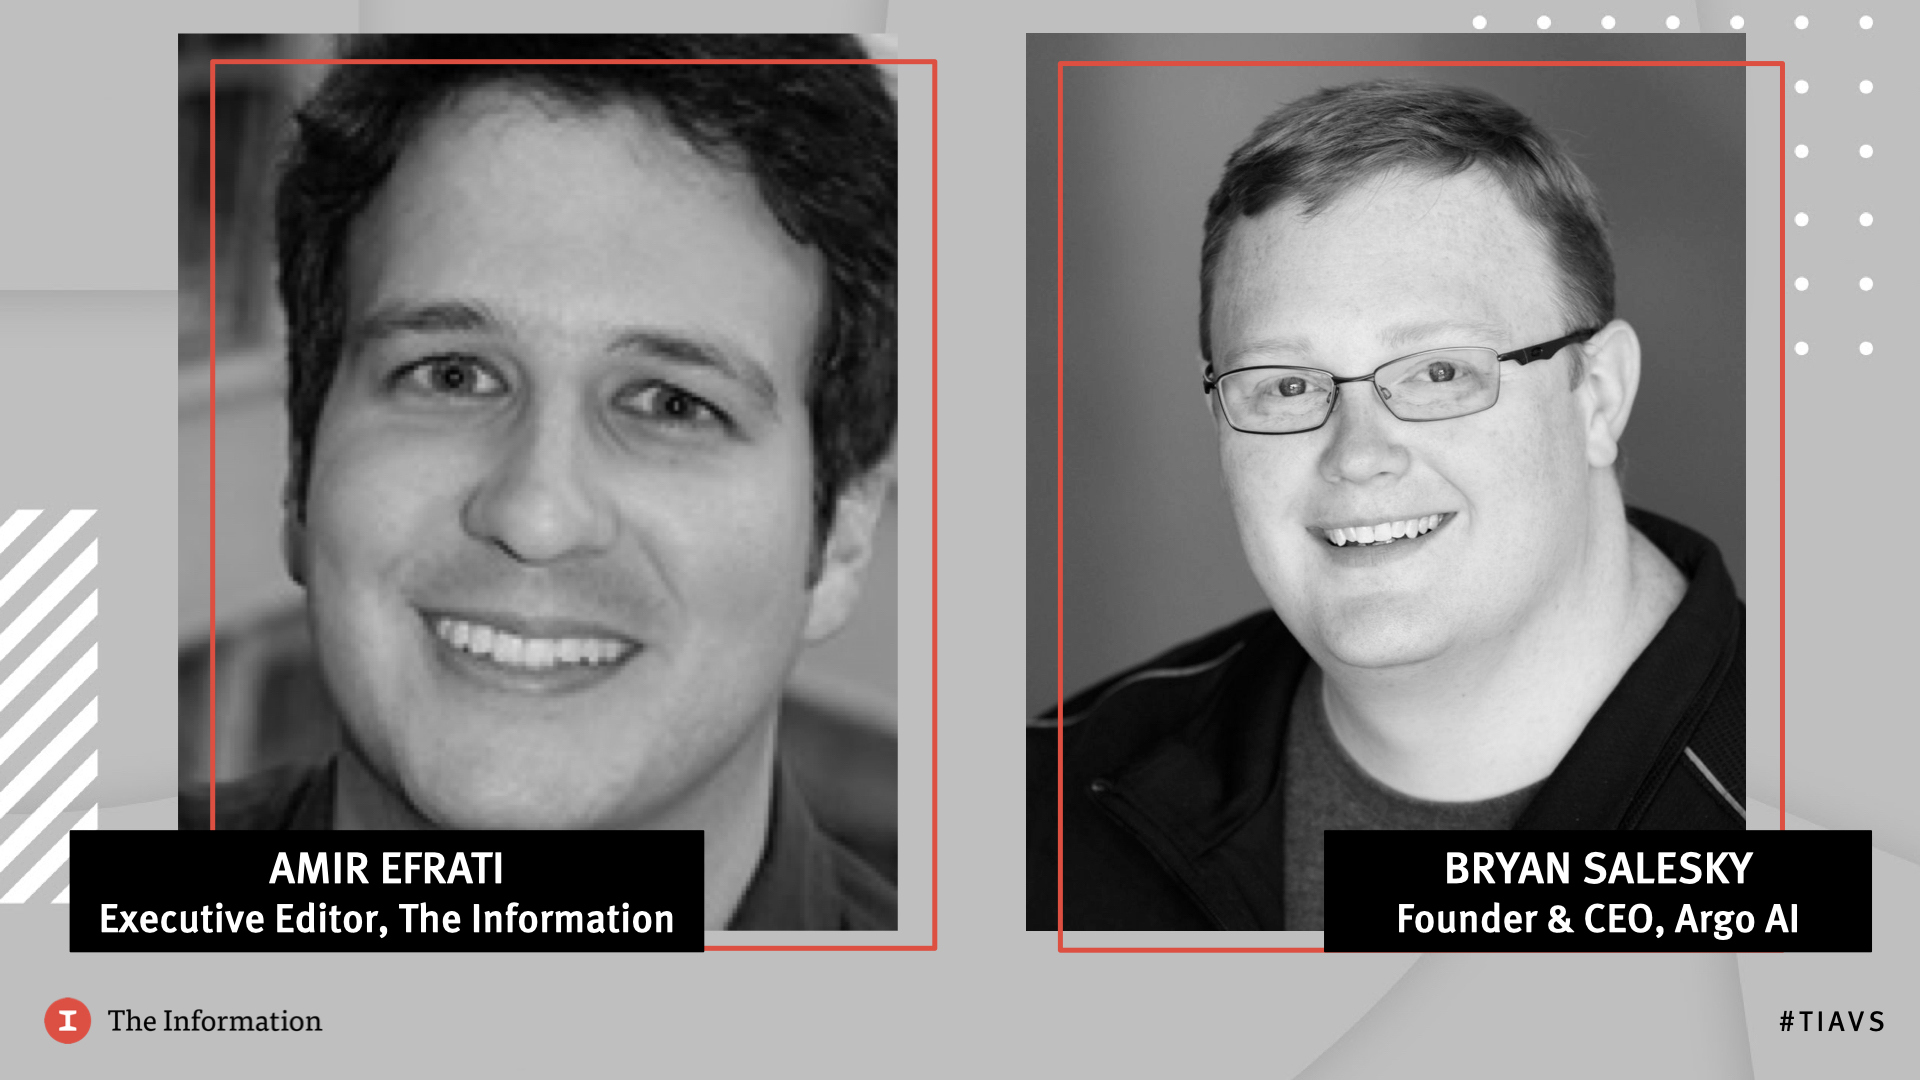 Clip of Bryan Salesky, Founder & CEO, Argo AI in conversation with Amir Efrati, Executive Editor, The Information